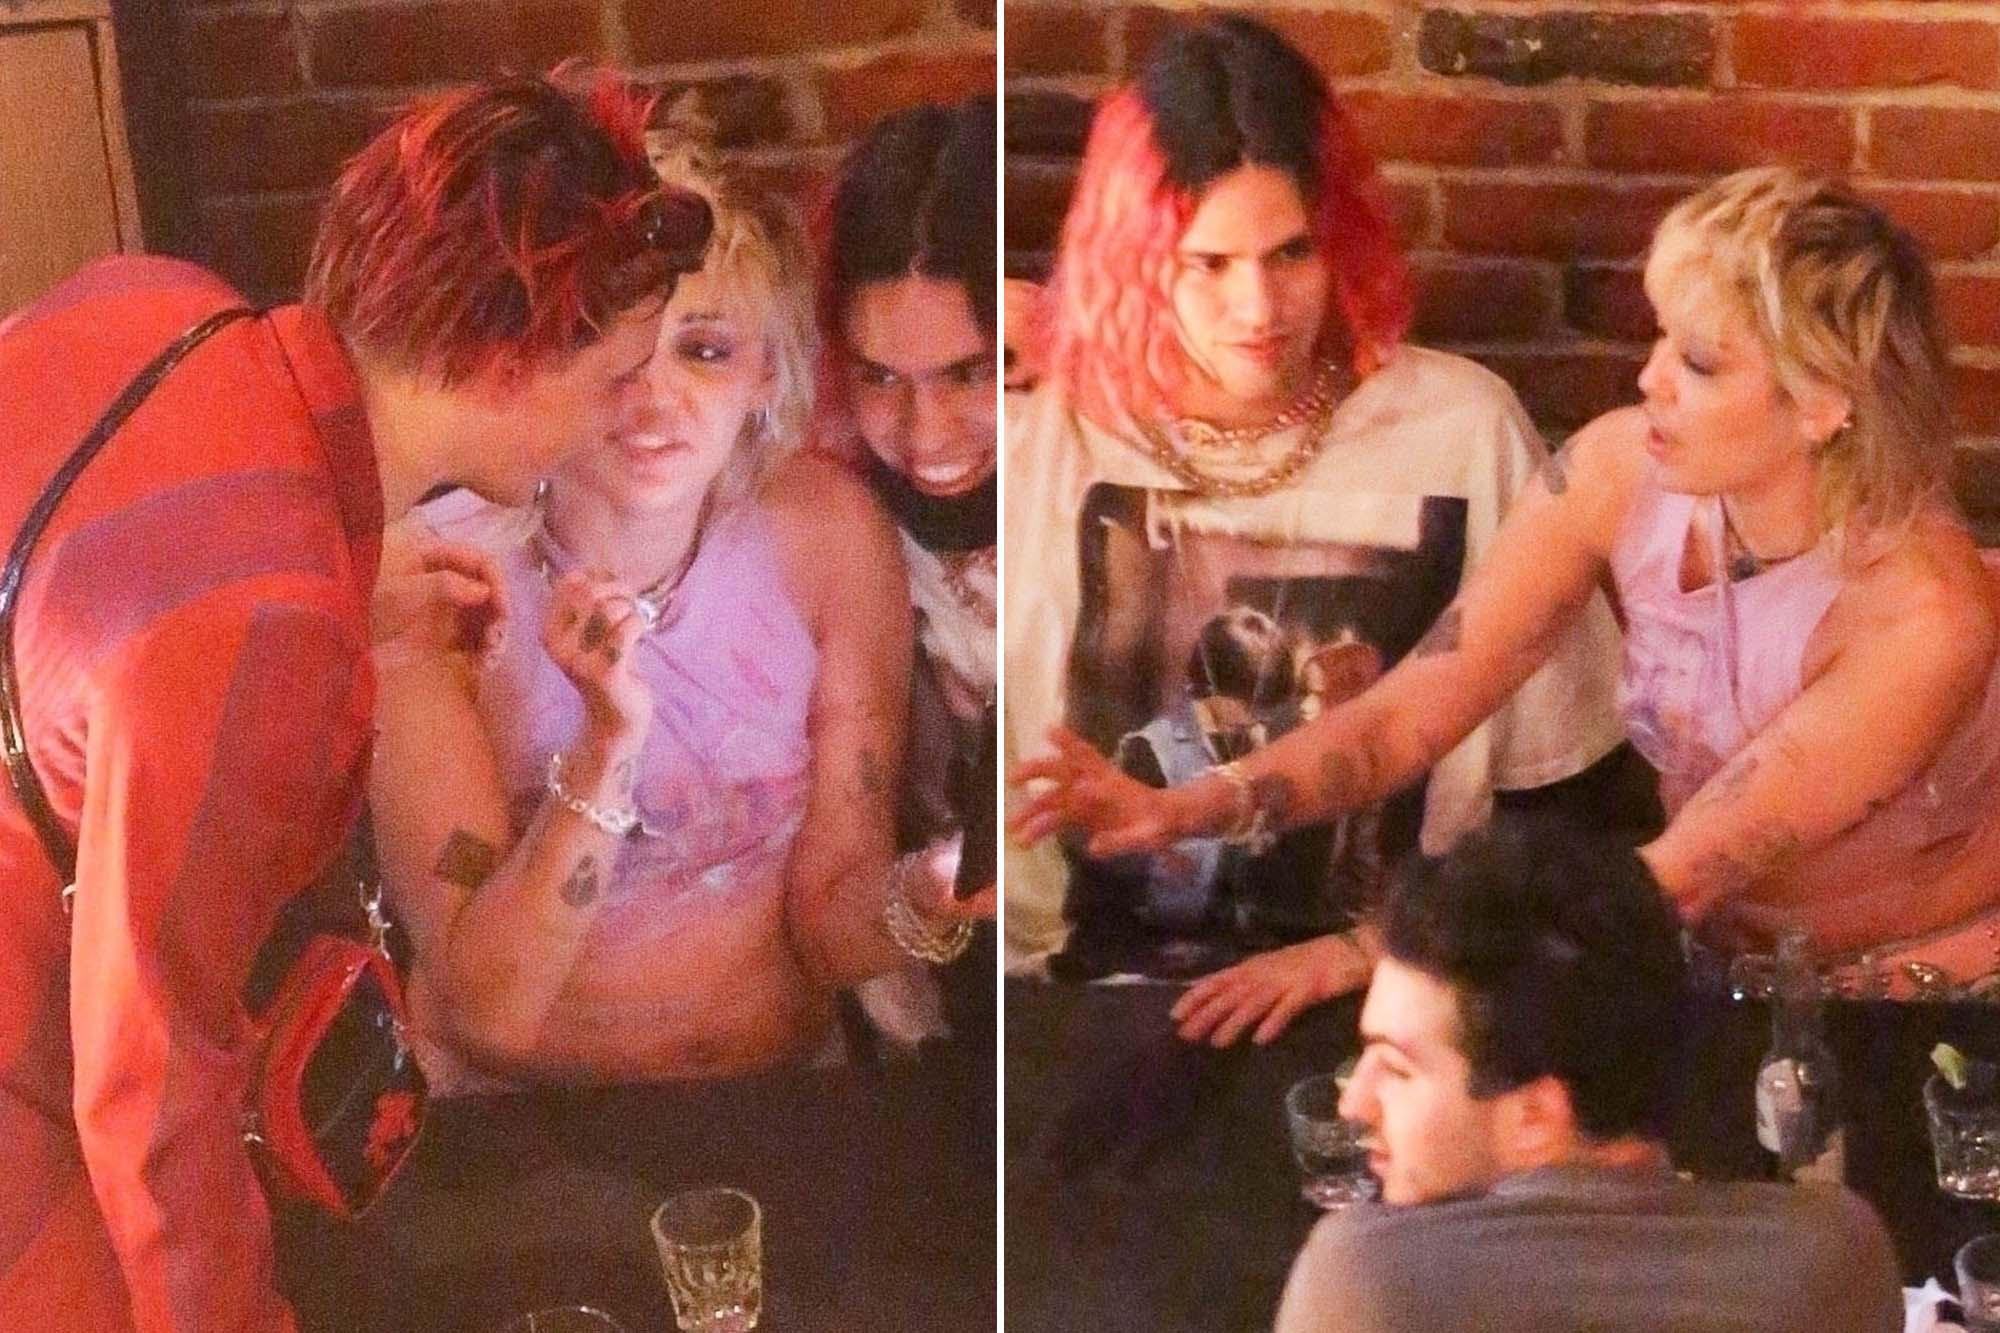 Photos: Miley Cyrus and Yungblud get cozy during night out